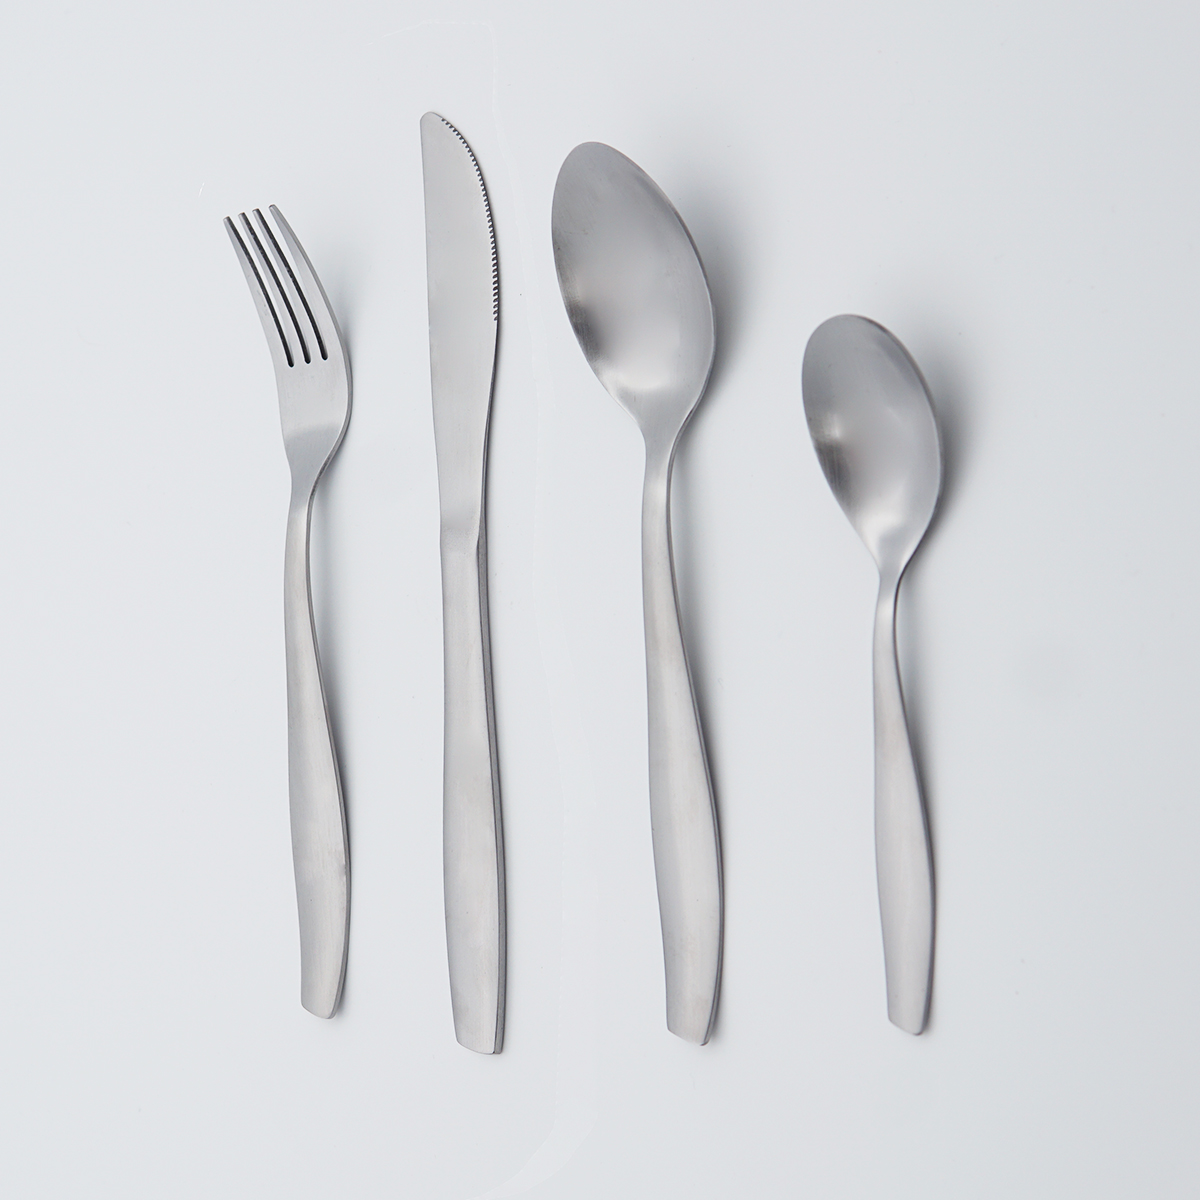 Wholesale Good Quality Cheap silverware flatware Strong and robust cutlery 18/8 stainless steel stainless set